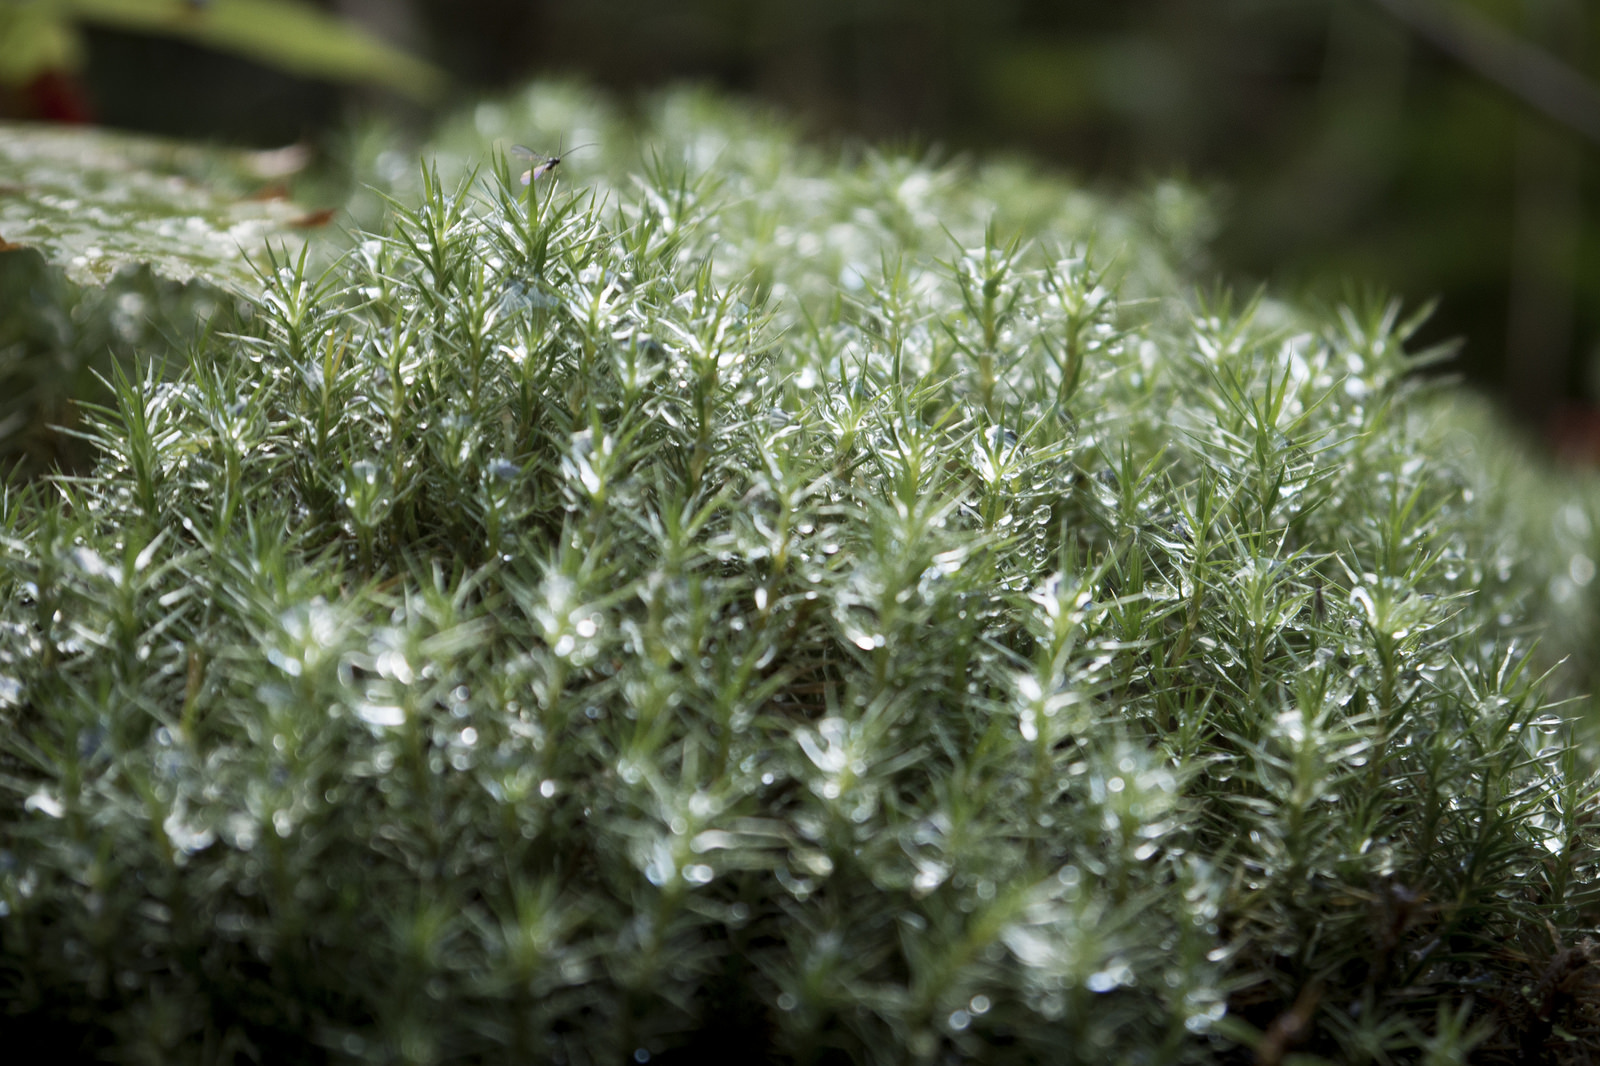 Dew in moss. (Goodson)